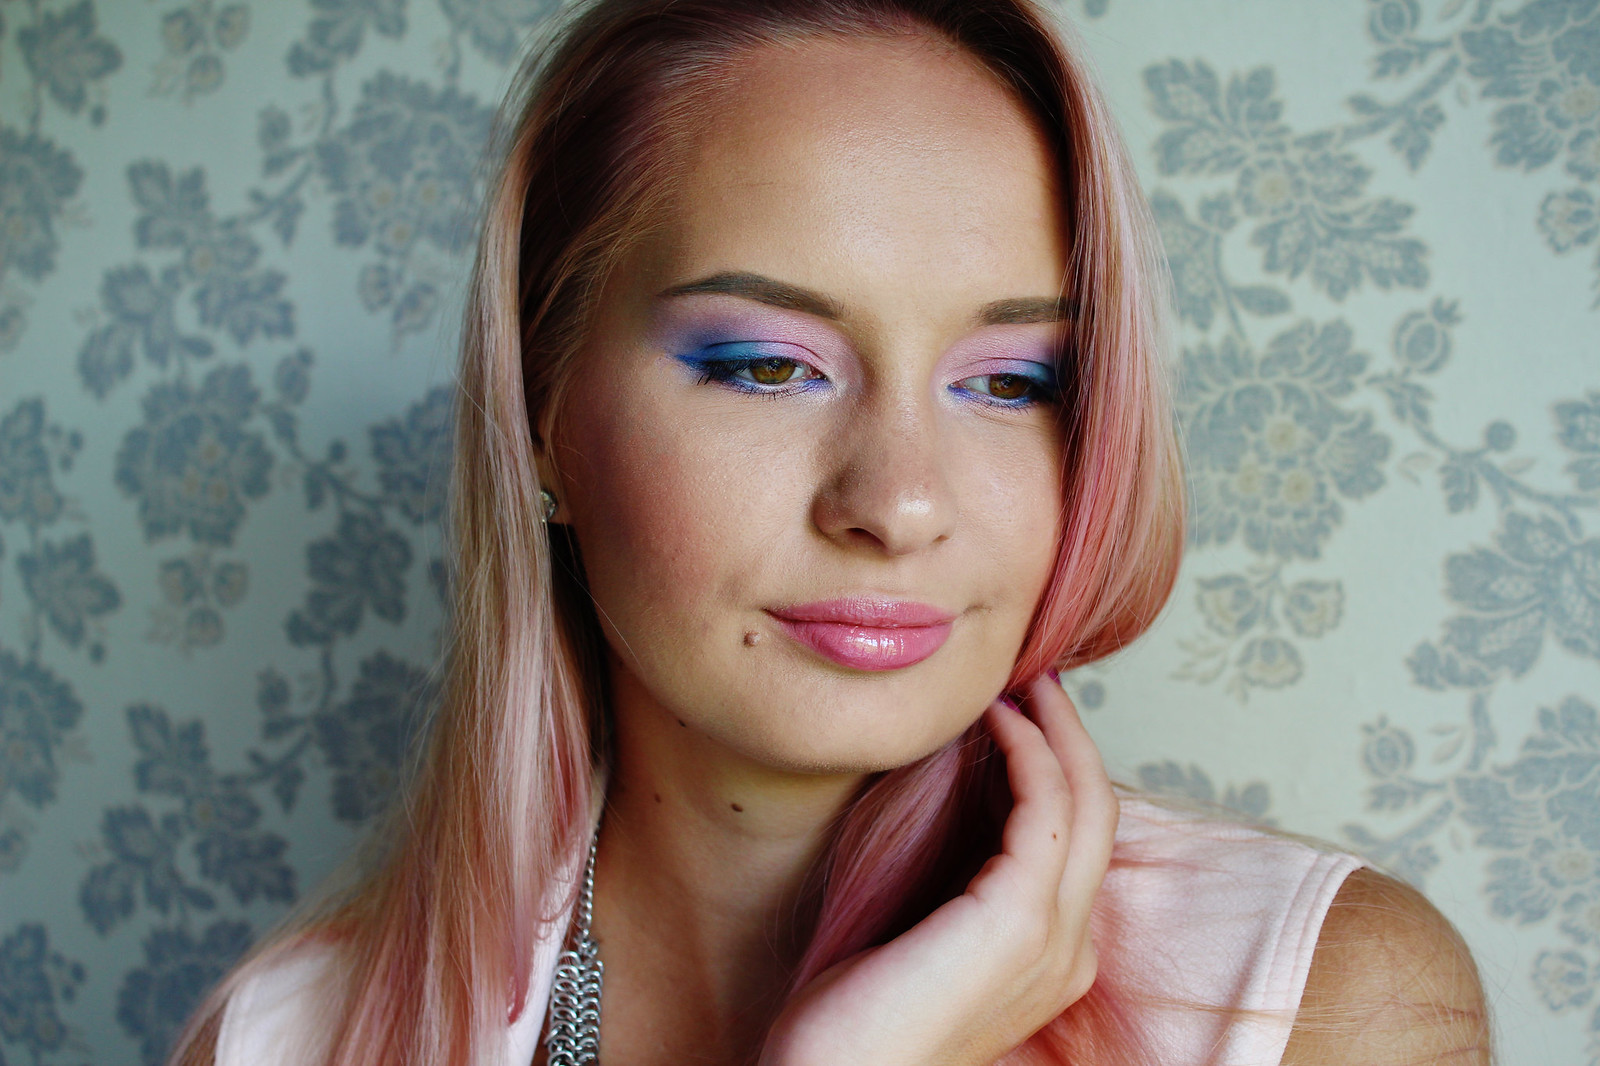 Pastel pink and blue makeup